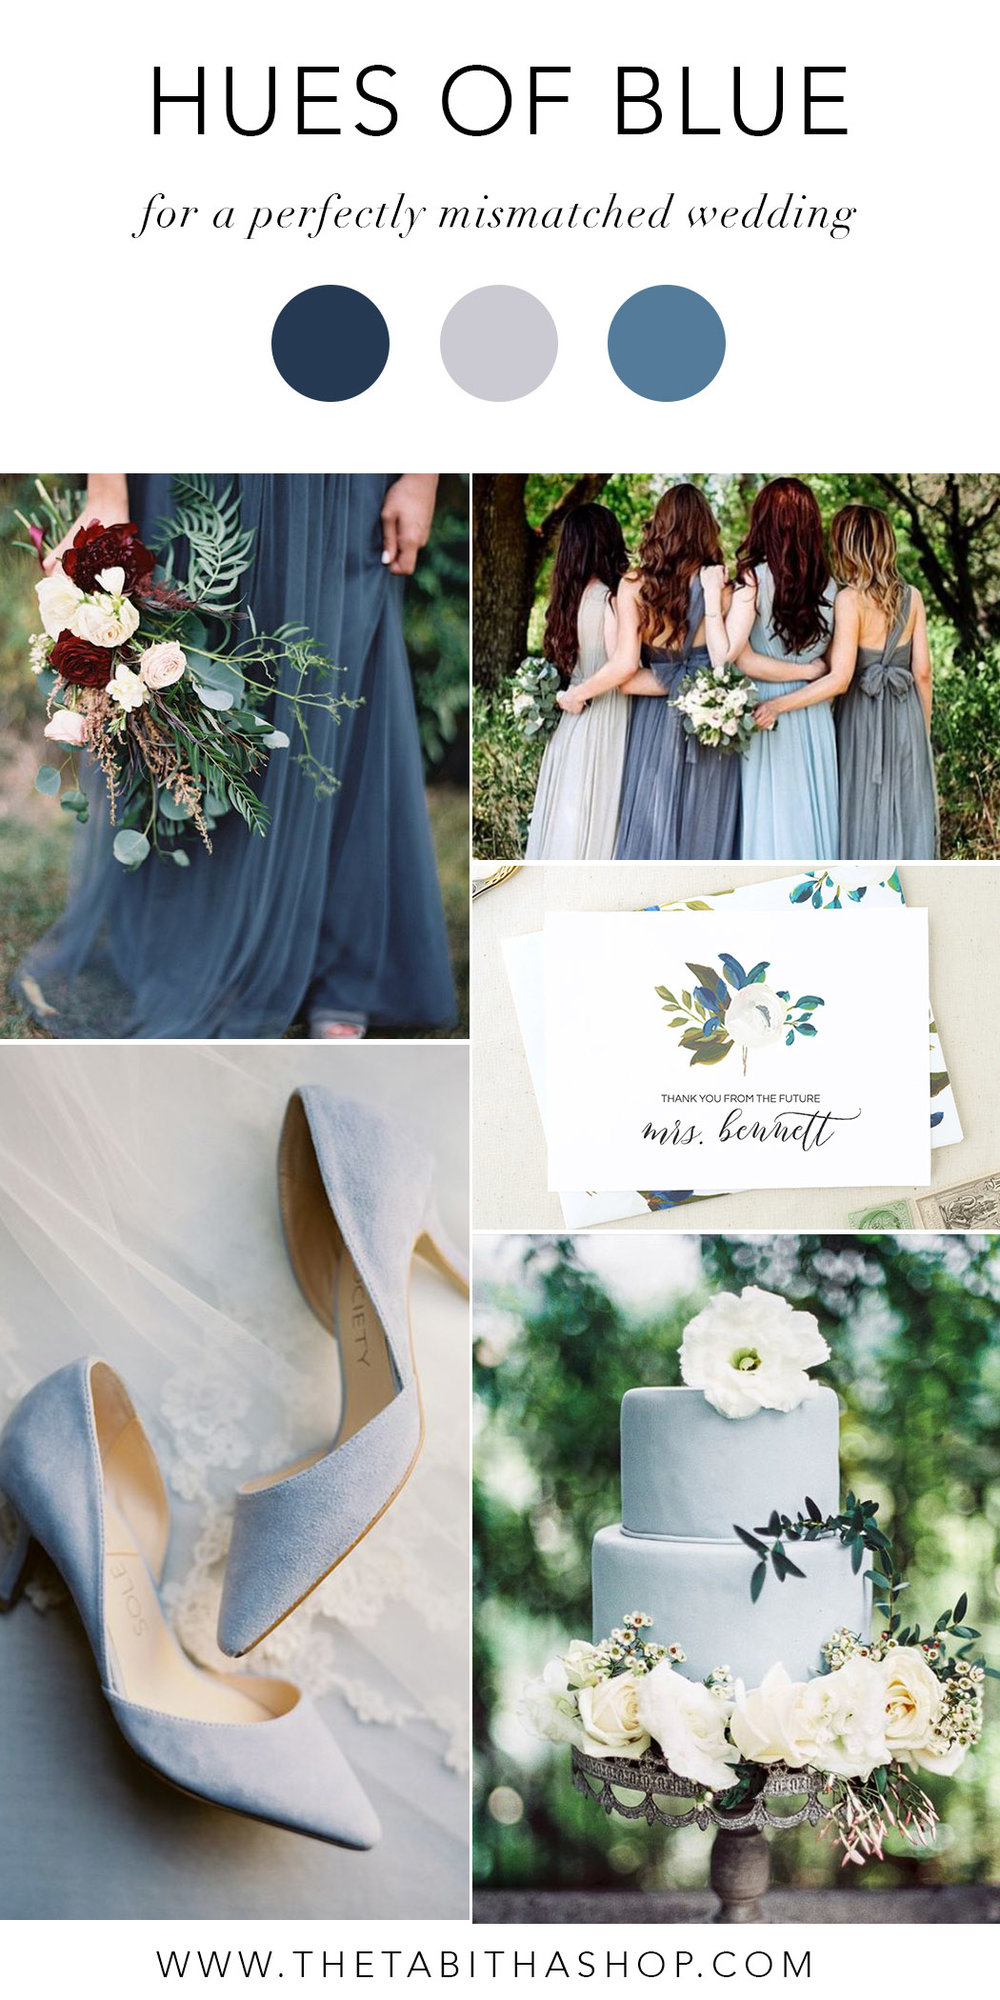 Clockwise, starting top left: Photo by  Clark Brewer  via  100 Layer Cake  // via  Plan Your Perfect Wedding  //  Future Mrs Thank You Card  by  The Tabitha Shop  // photo by  LARA LAM  via  Magnolia Rouge  // photo by  Meghan Mehan  via  Style Me Pretty